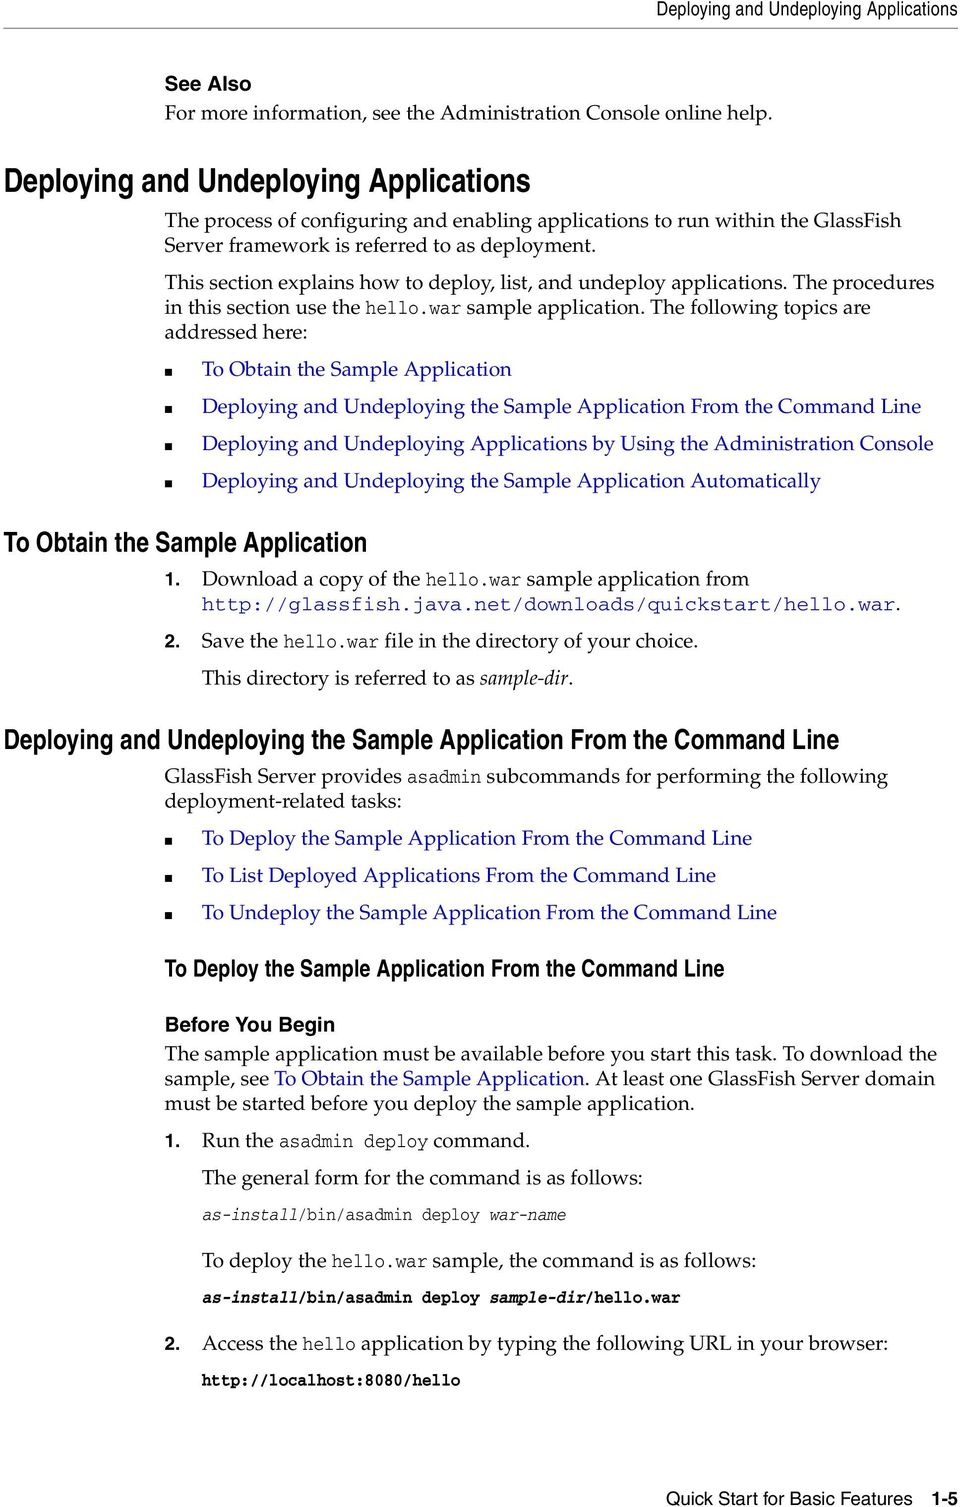 This section explains how to deploy, list, and undeploy applications. The procedures in this section use the hello.war sample application.